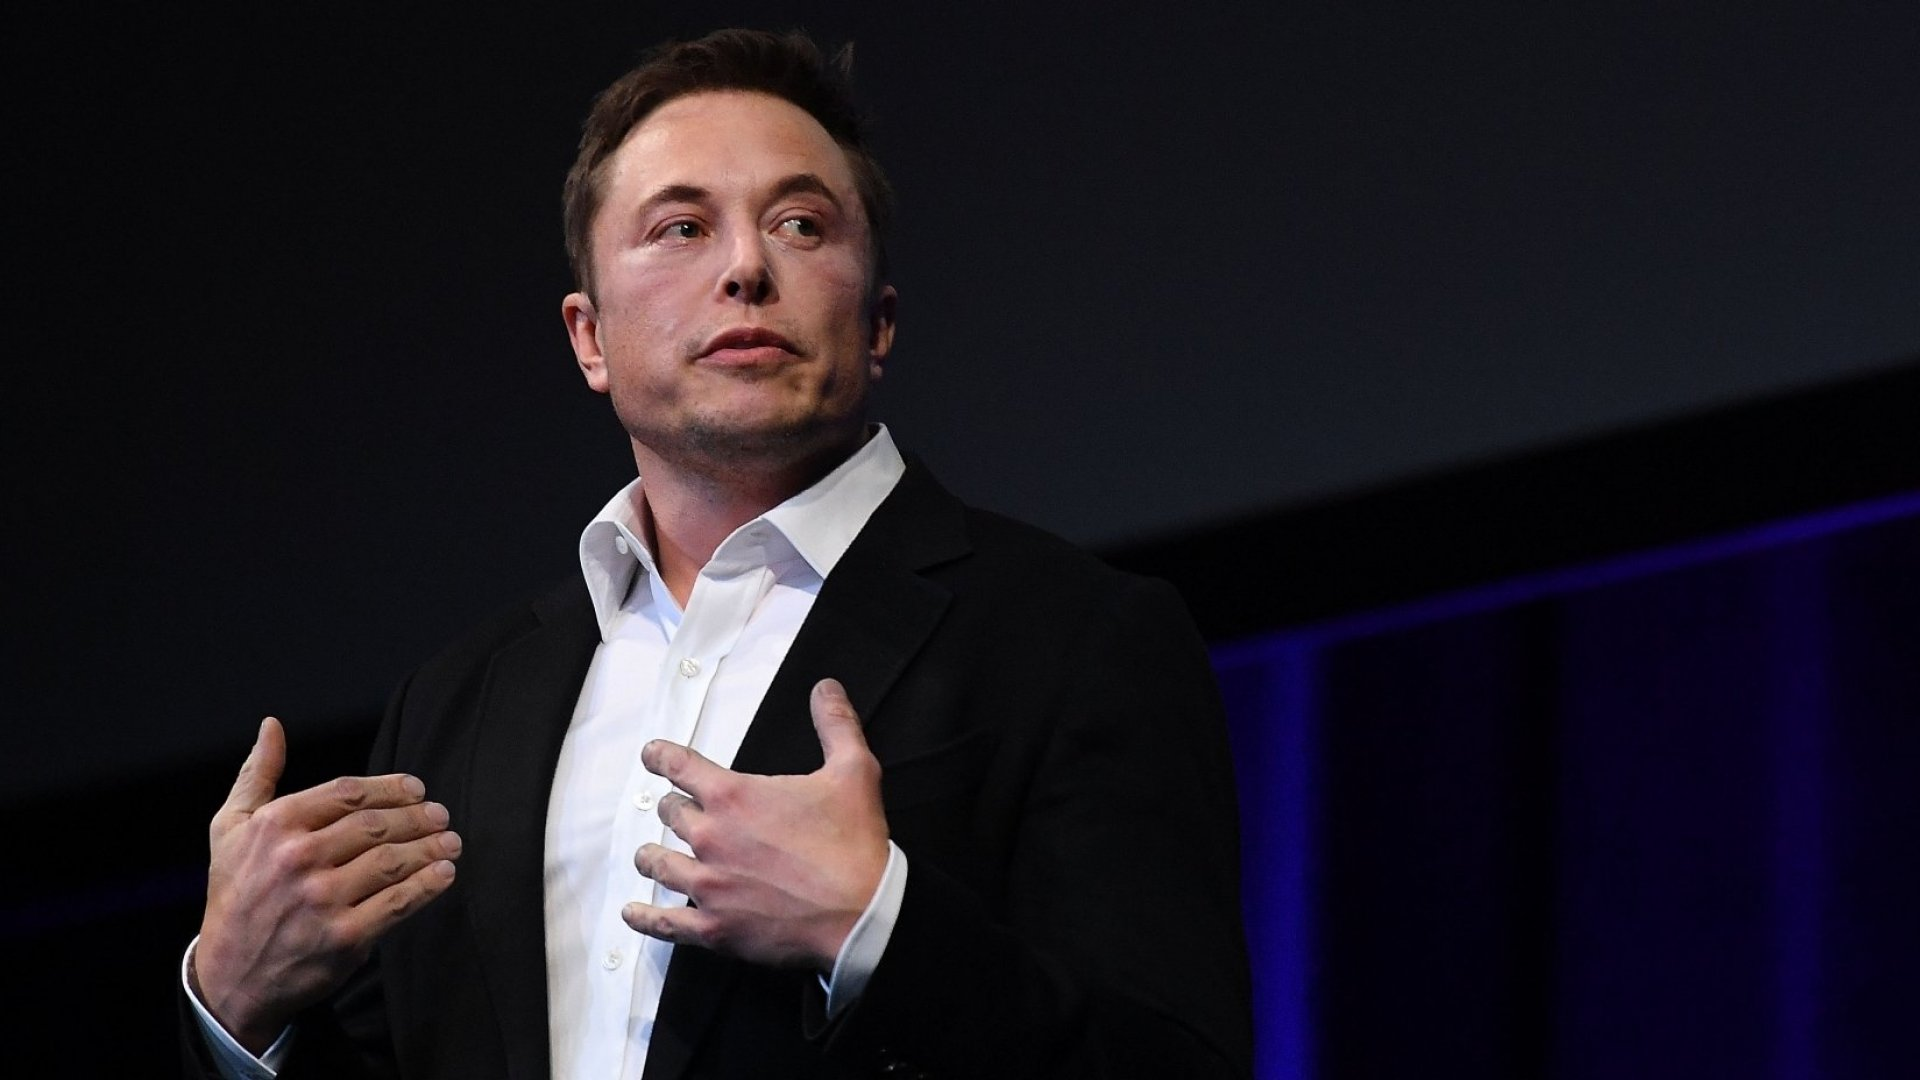 Elon Musk Takes to Instagram With Response to Tesla Model 3 Criticism